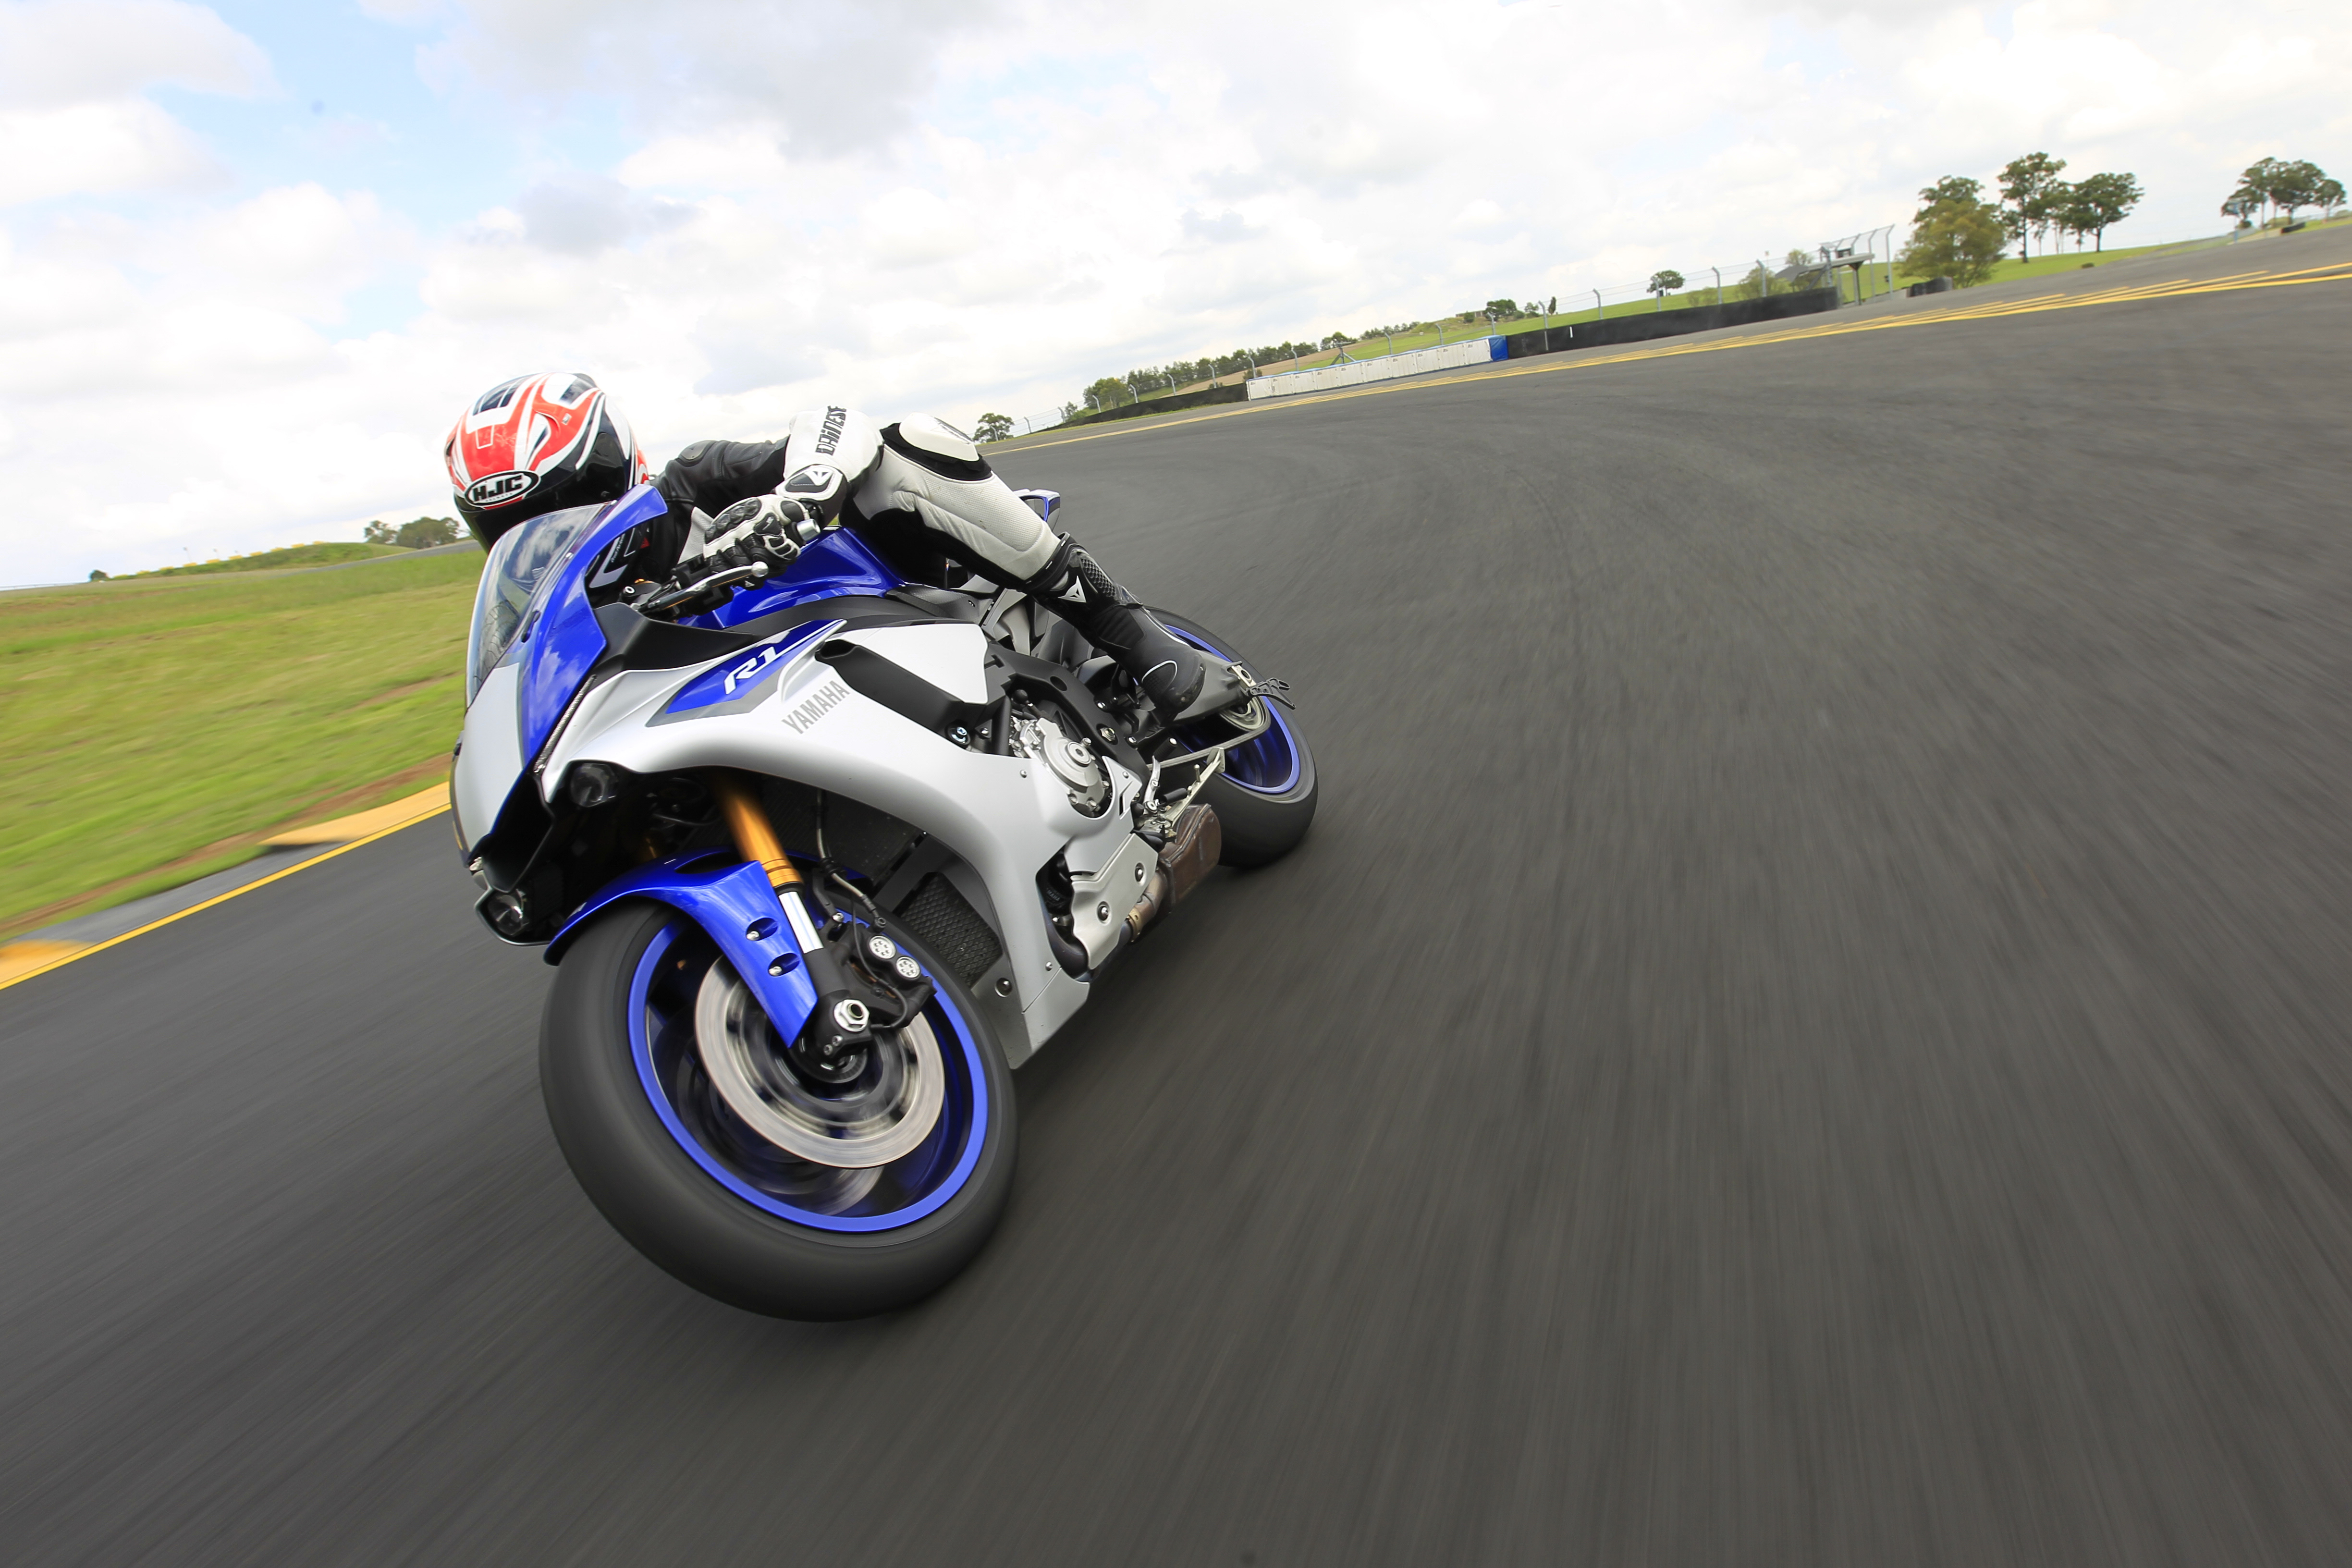 First ride yamaha r1 and r1m review visordown first ride yamaha r1 and r1m review publicscrutiny Images